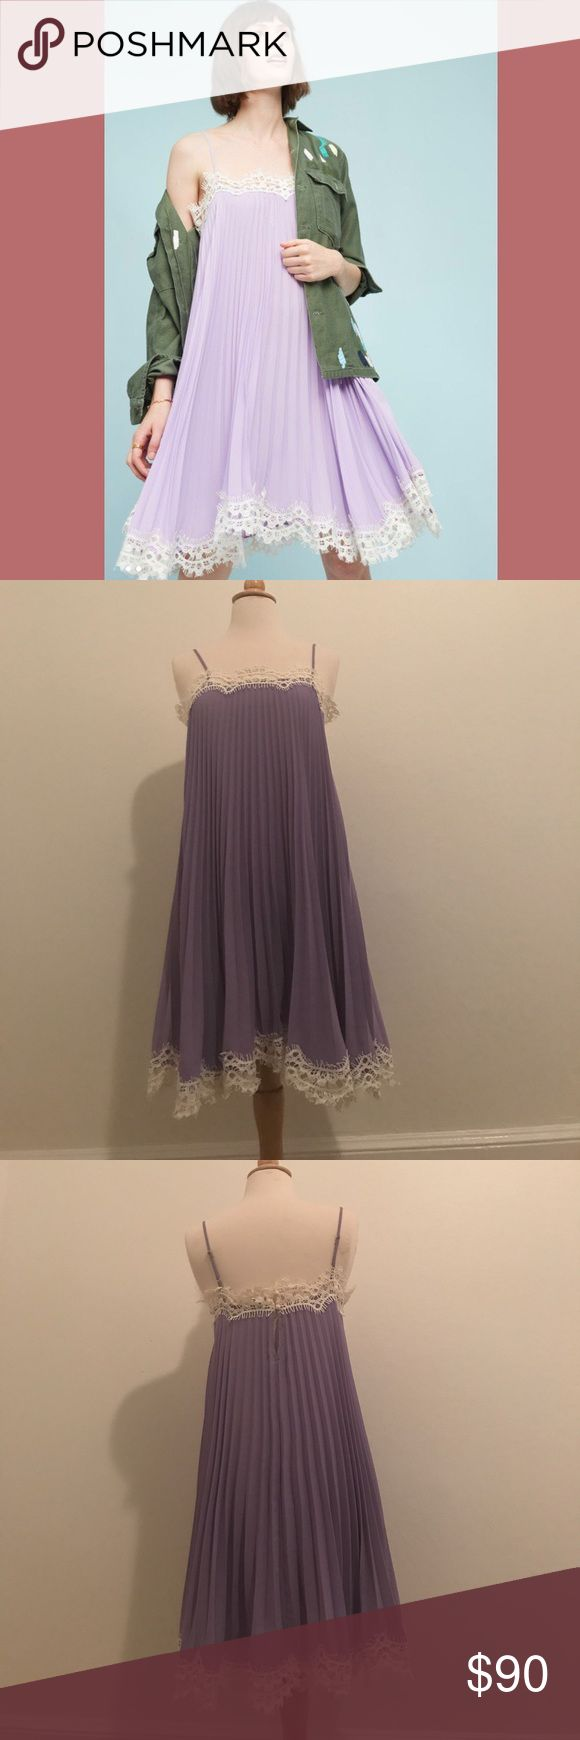 Offers welcome! NWT Anthropologie dress 👗 New with tags Lilac dress from Anthropologie by Moulinette Soeurs. Anthropologie Dresses